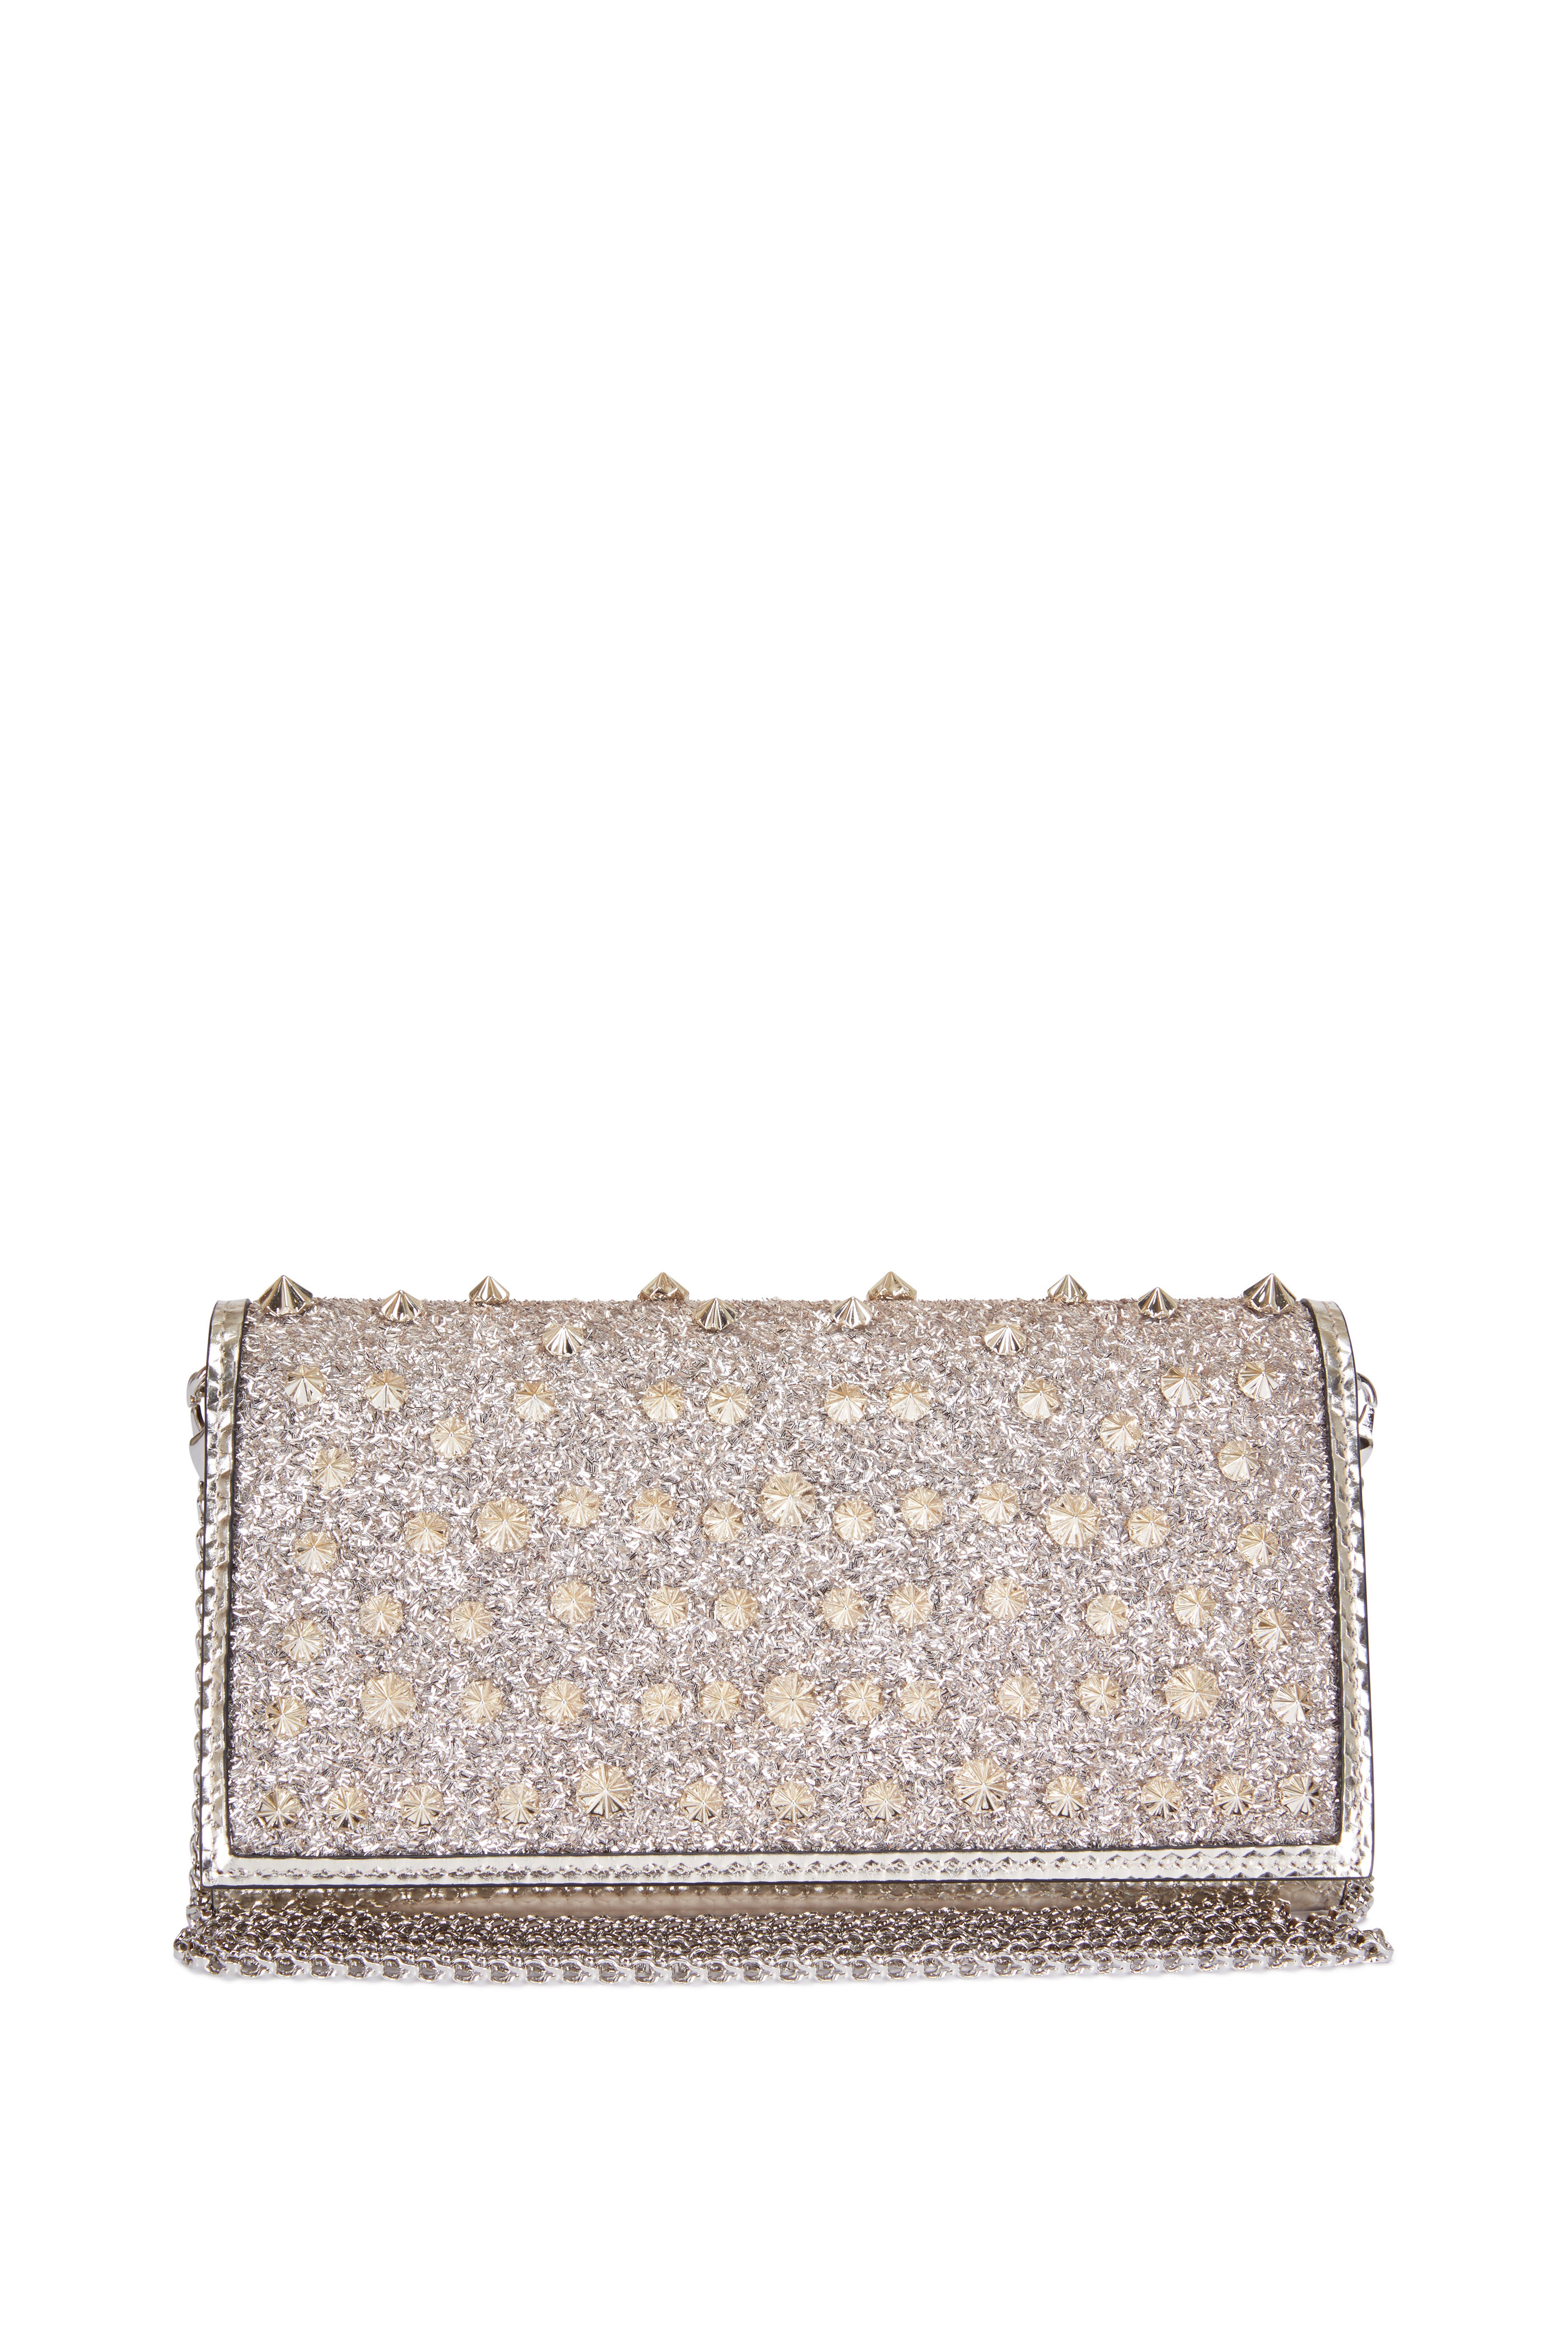 053c71e31f2 Christian Louboutin - Boudoir Gold Frosted Glitter Leather Chain ...